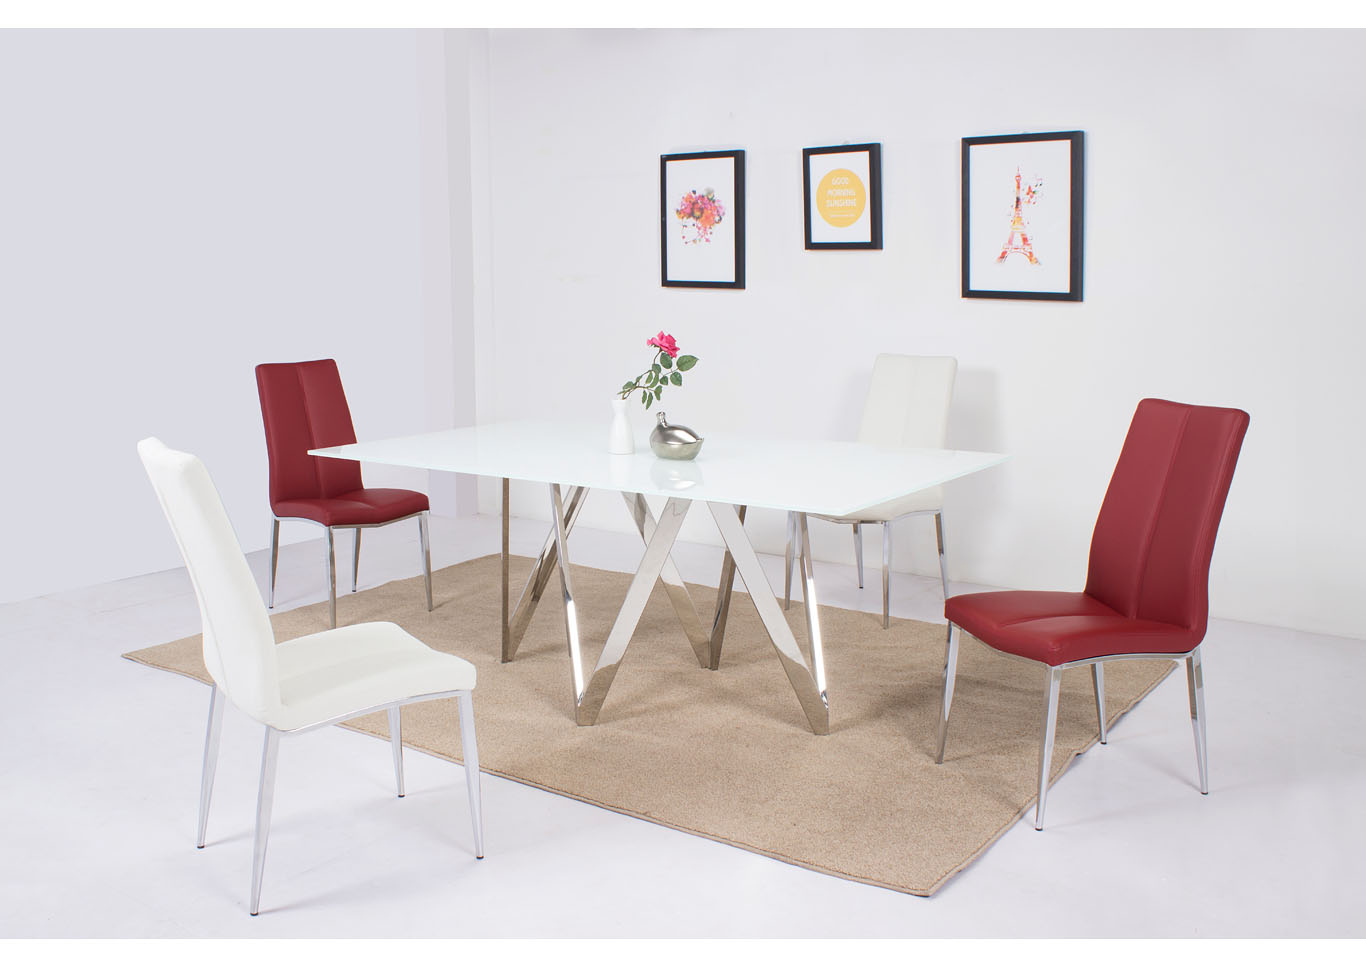 Abigail White 5 Piece Dining Room Set,Chintaly Imports